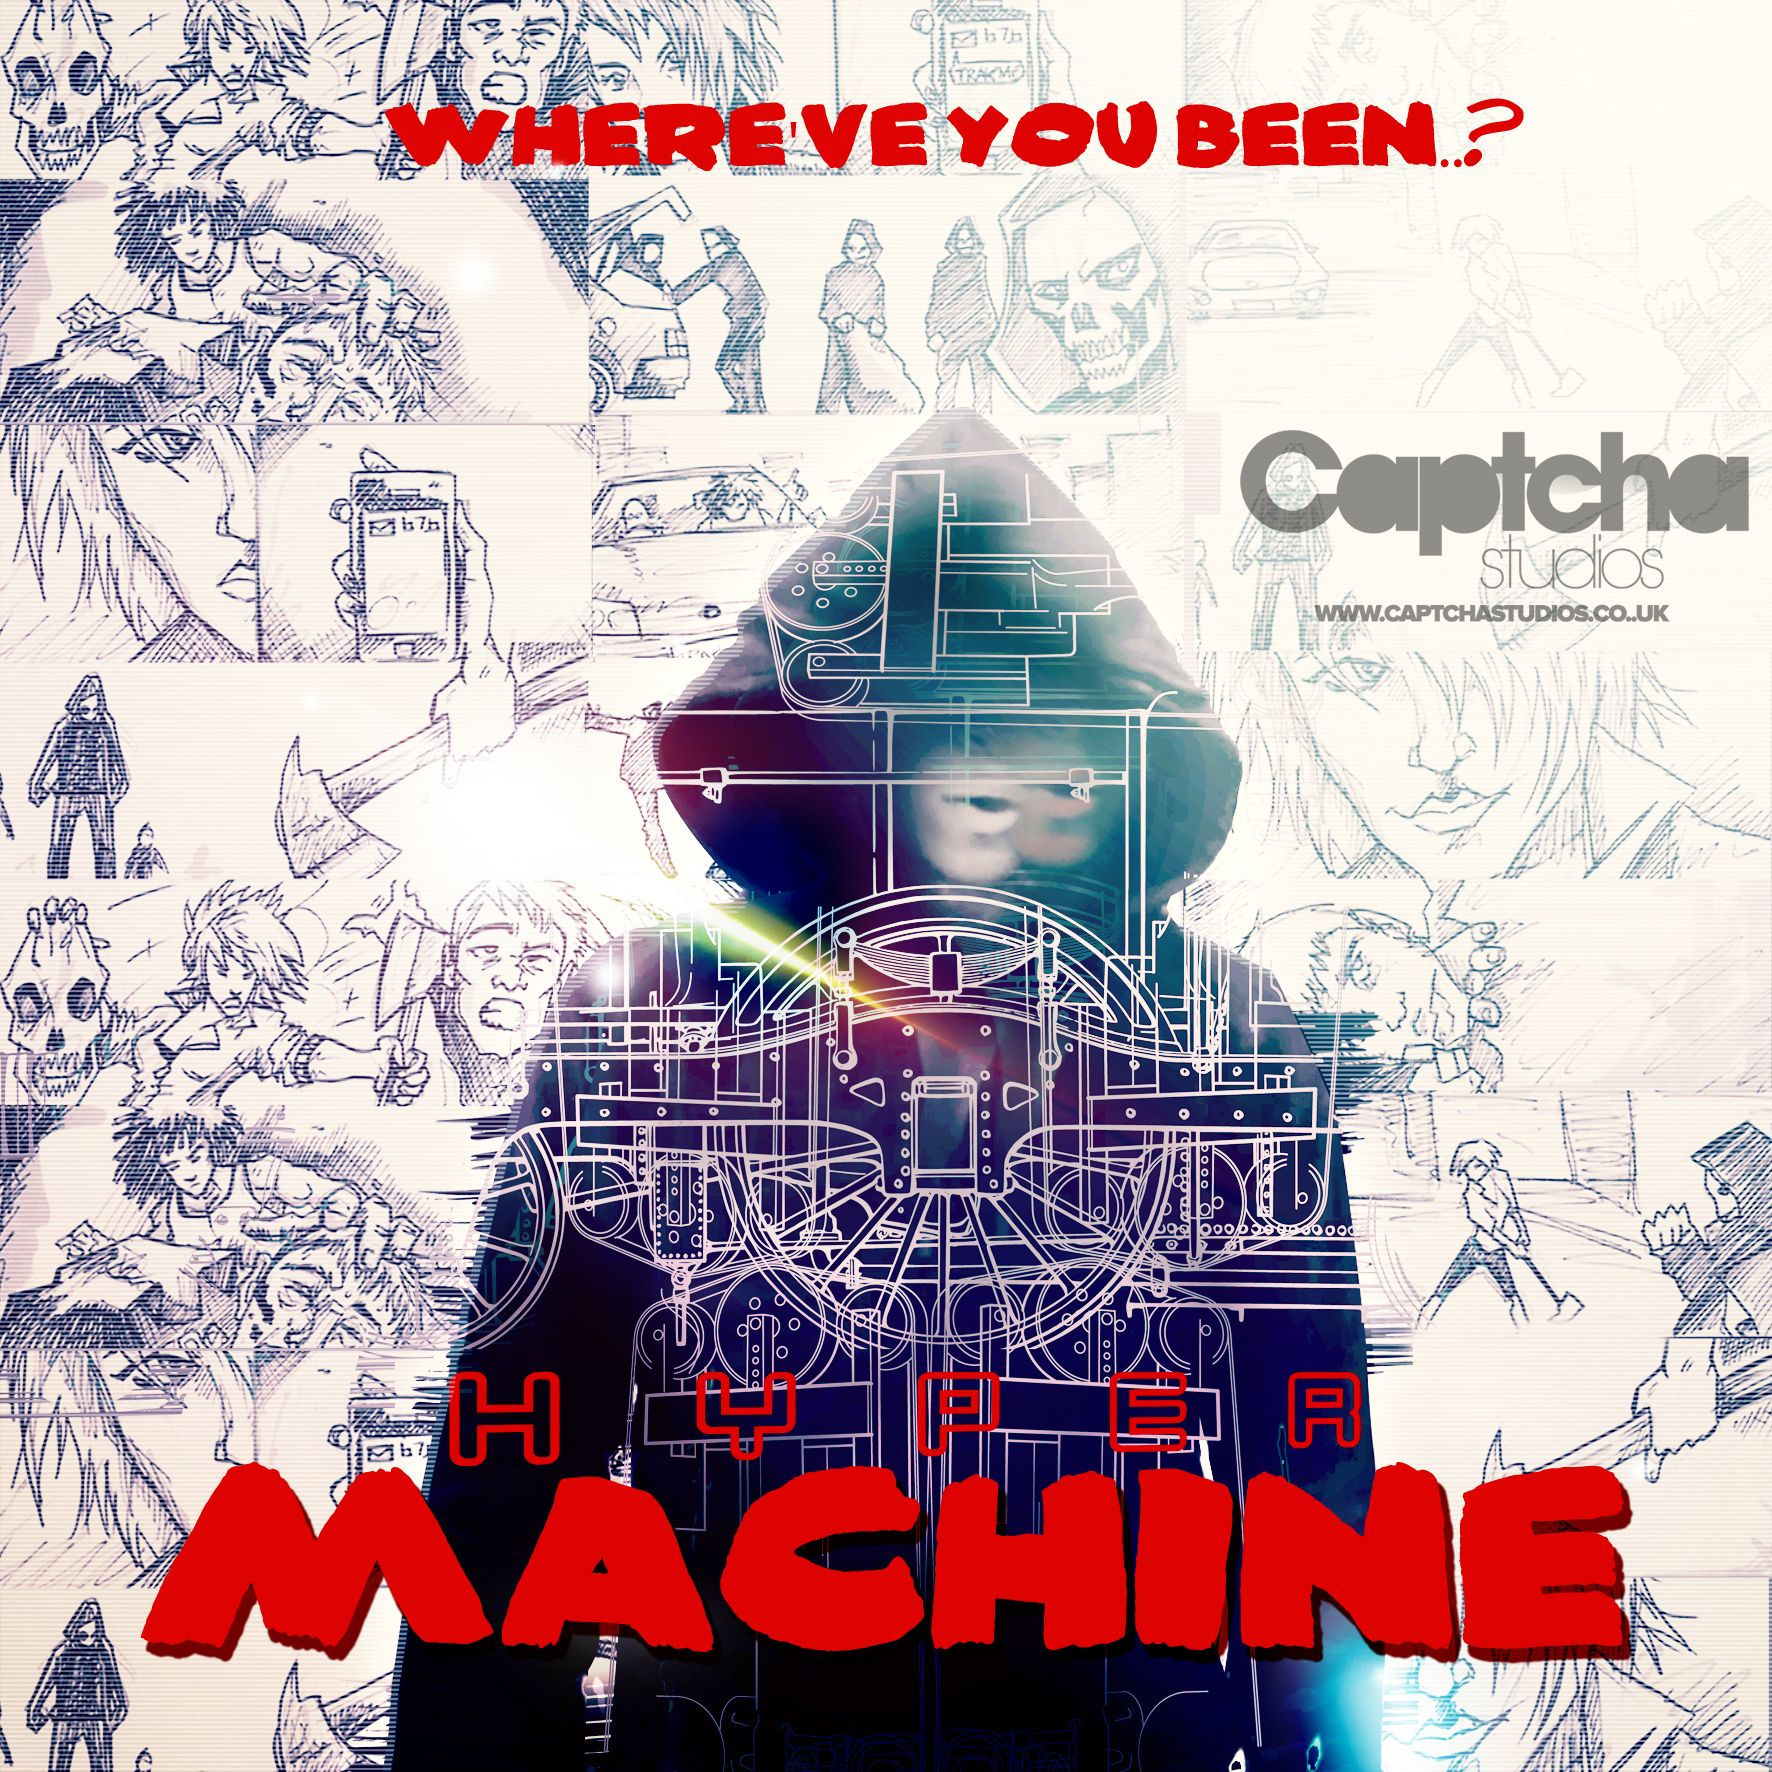 Hyper - Machine (Packshot)  Artwork created for the artist 'Hyper's' single 'Machine'. Including photo used in music video (shot by Captcha Studios) and illustrated storyboard sequence.